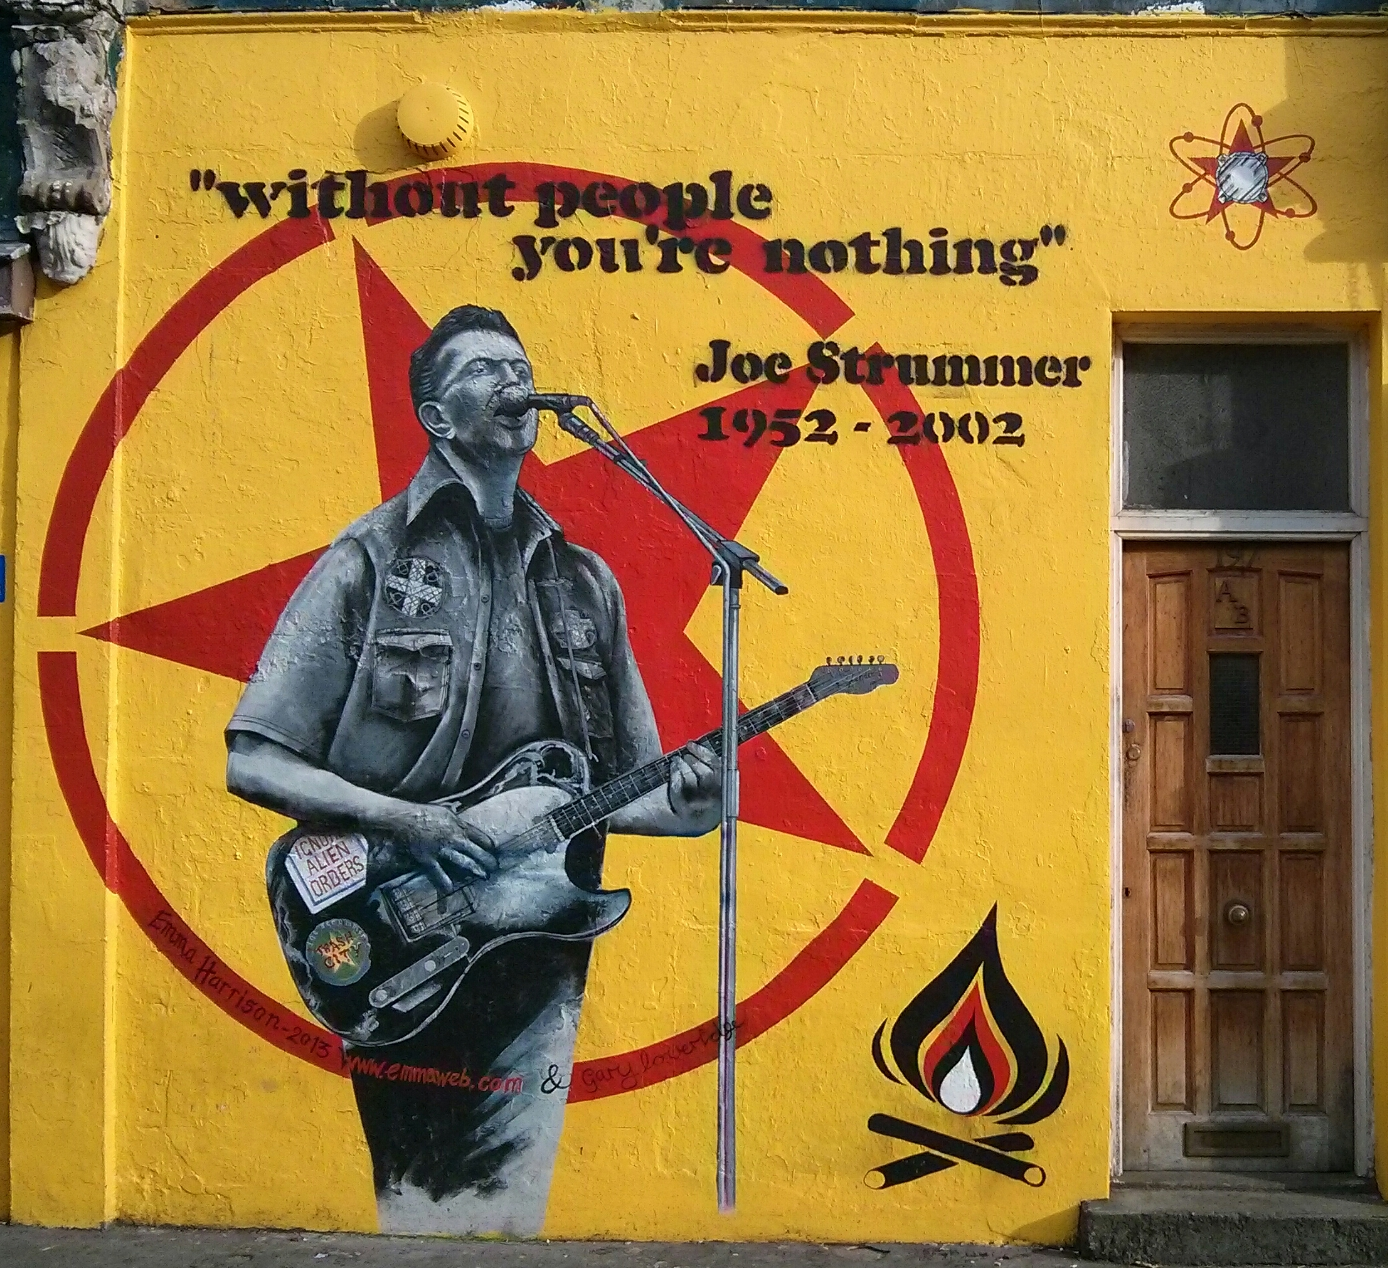 Picture Wednesday - As Joe Strummer Said